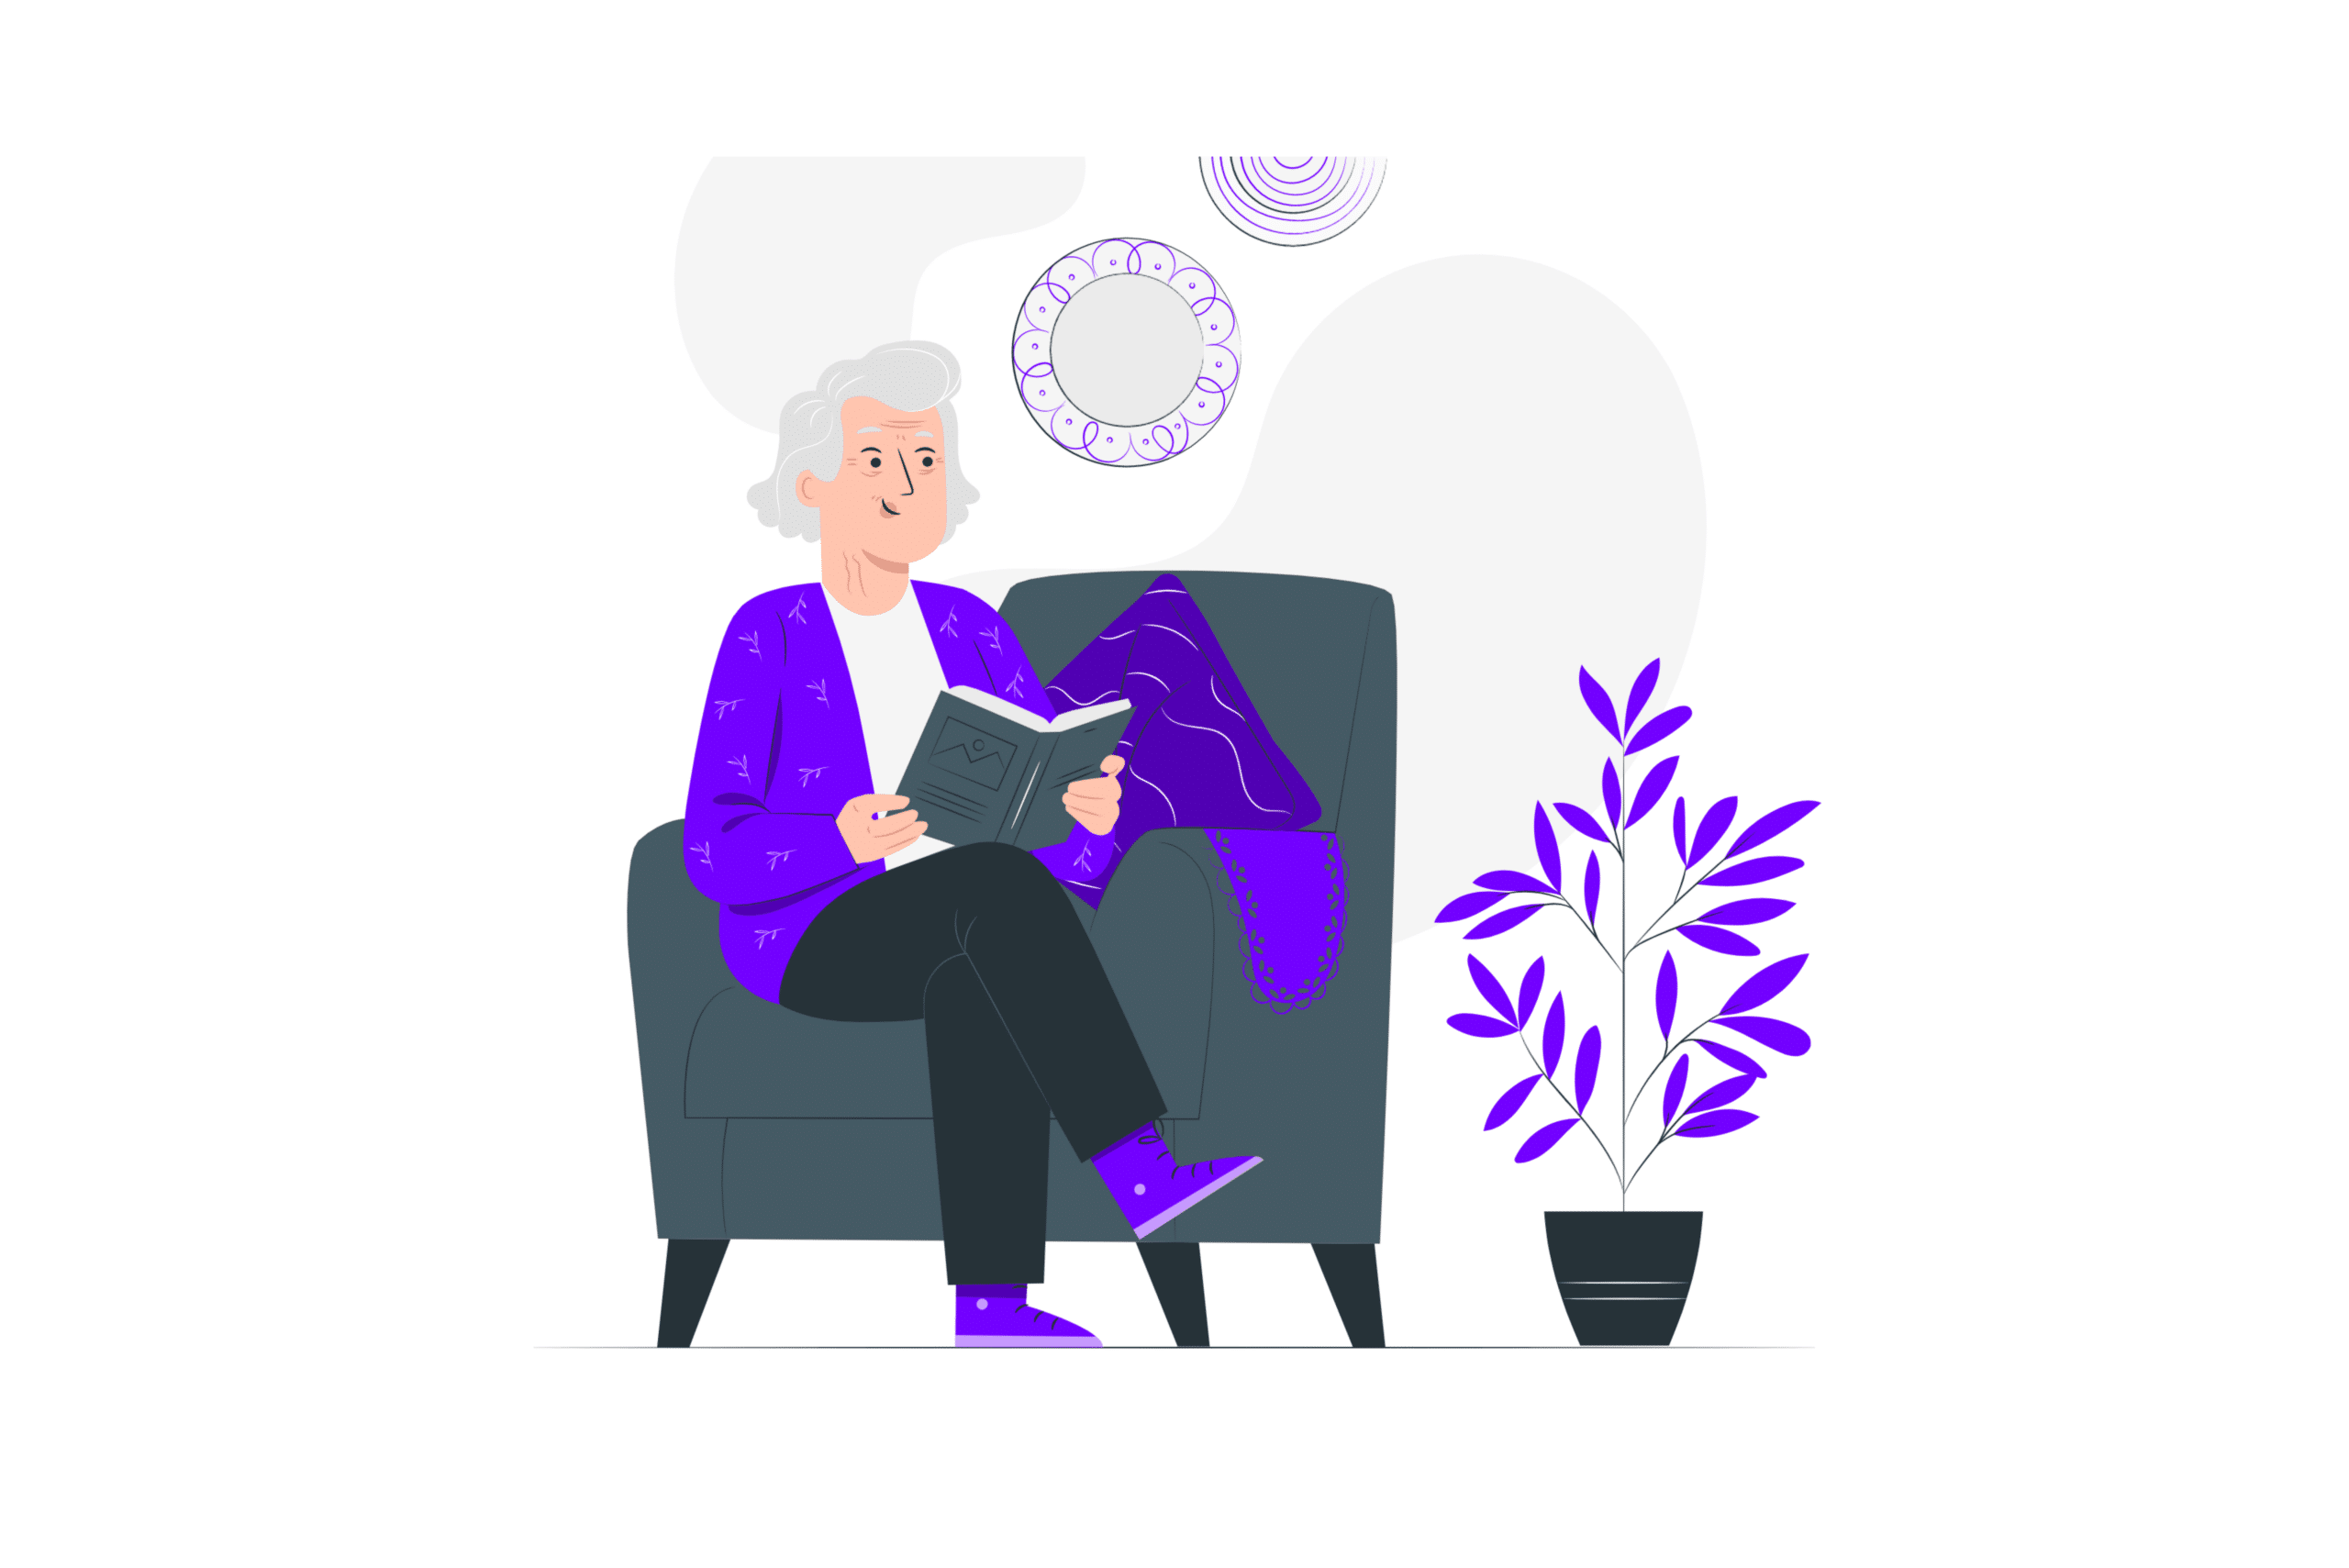 illustration about an old lady looking for houses